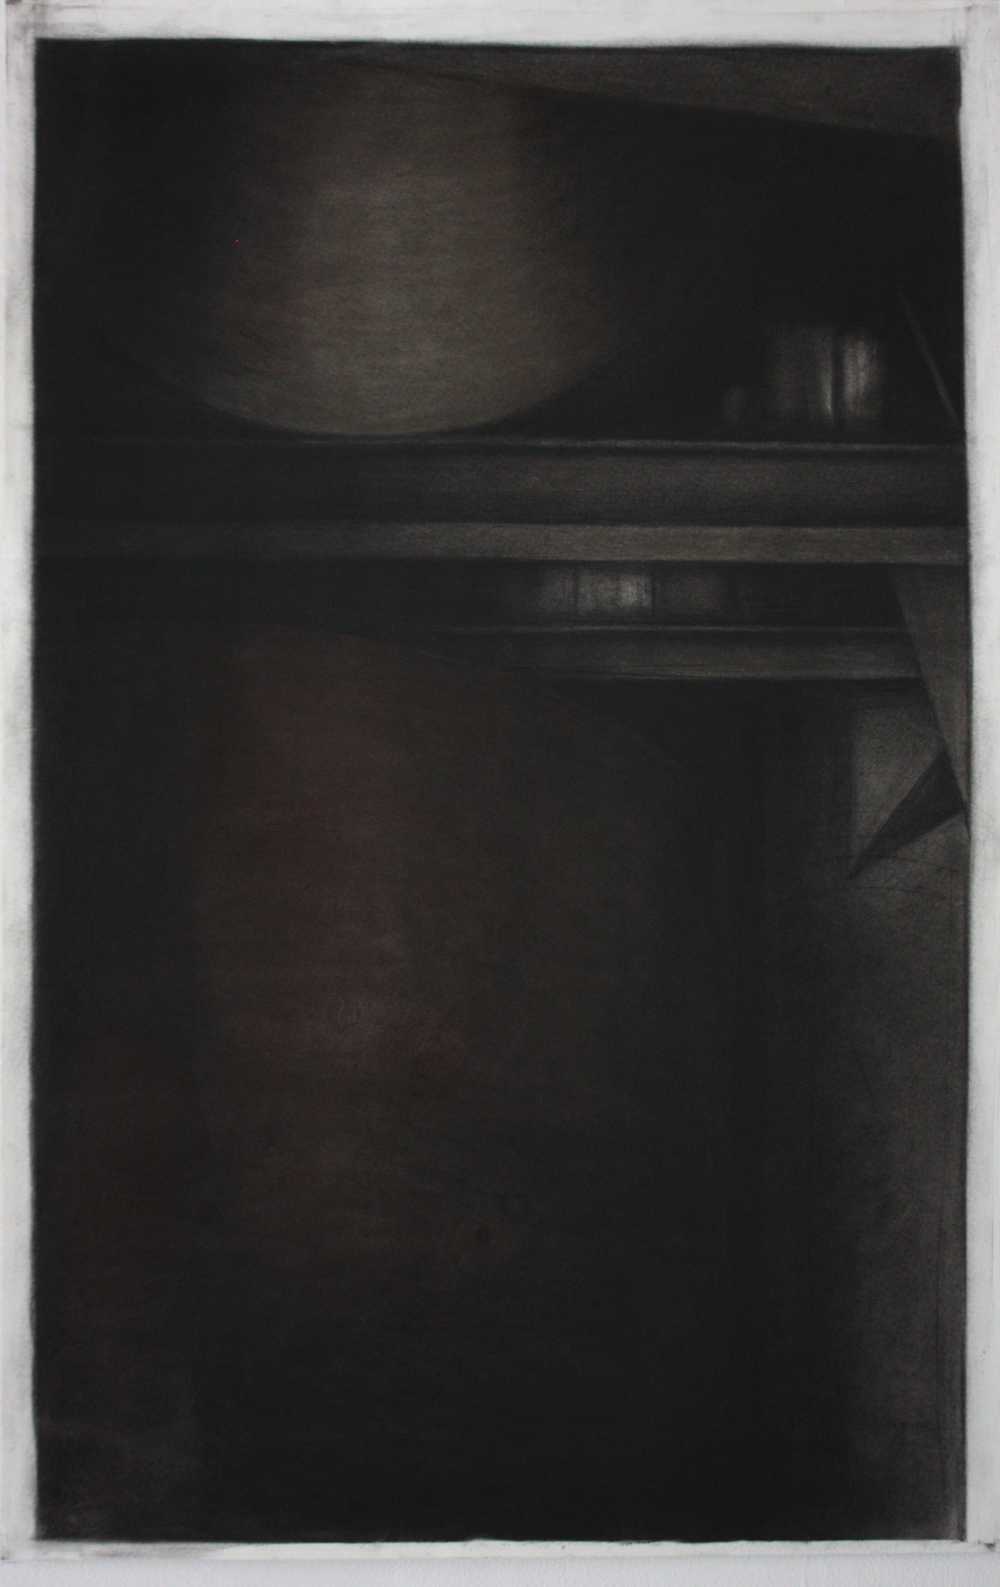 Detroit Series 002, Charcoal and pastel on paper, 89x57.5cm